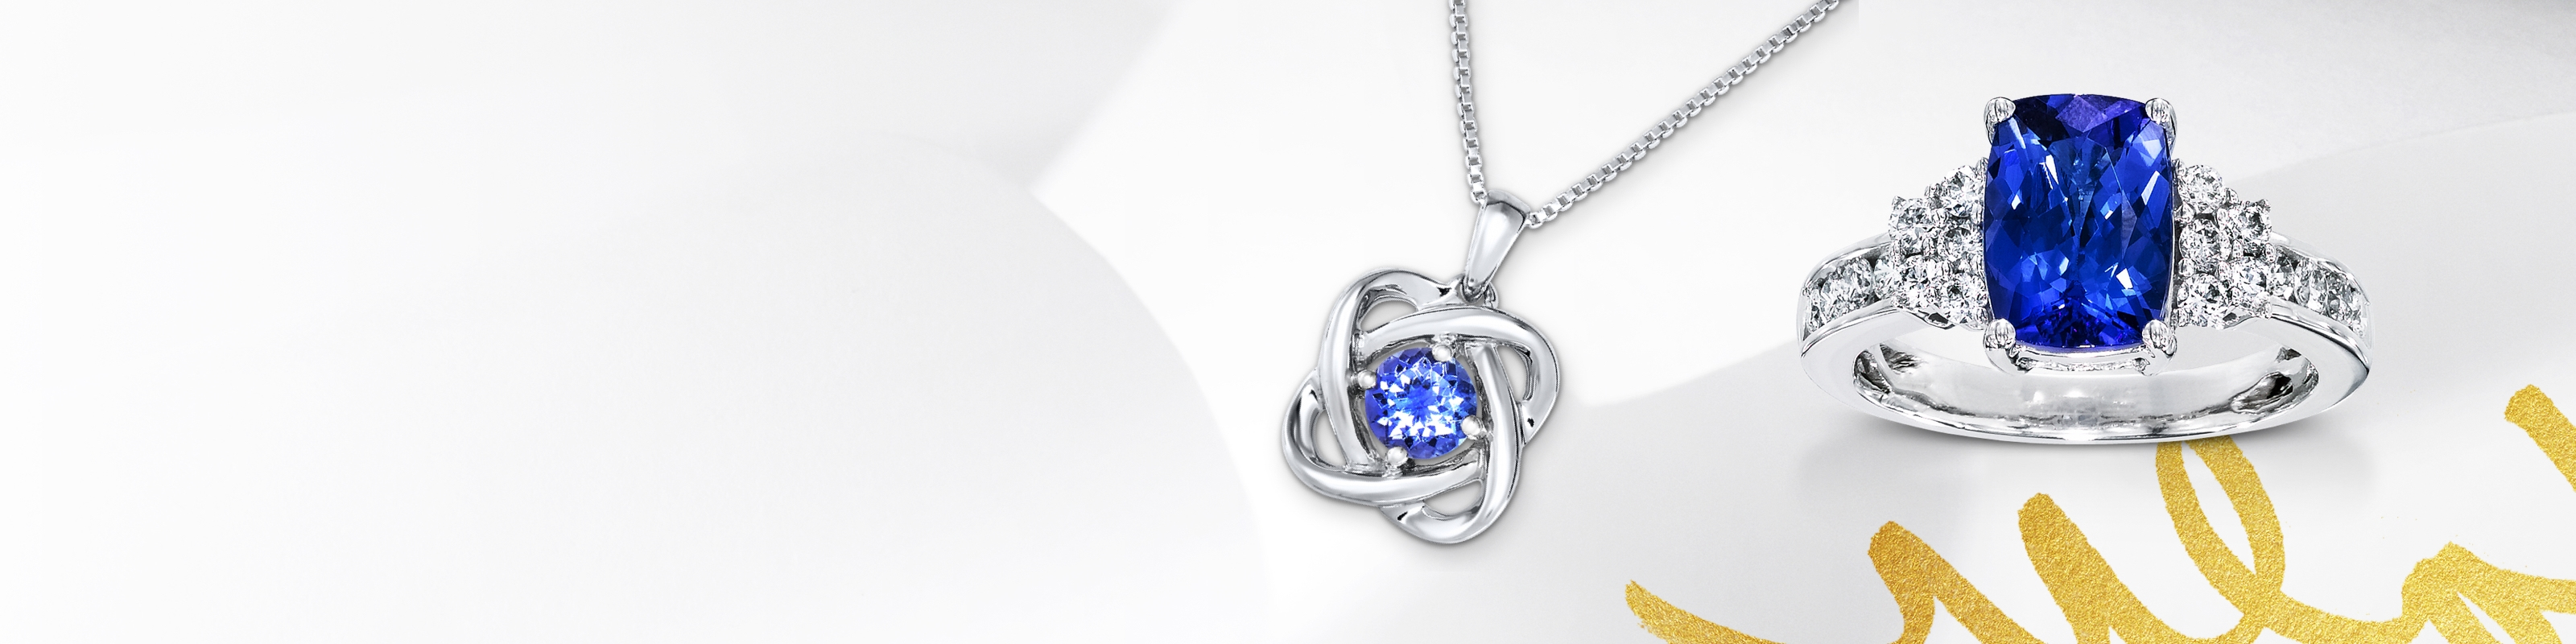 Tanzanite ring and necklace set in white gold. Shop all tanzanite jewelry at Jared.